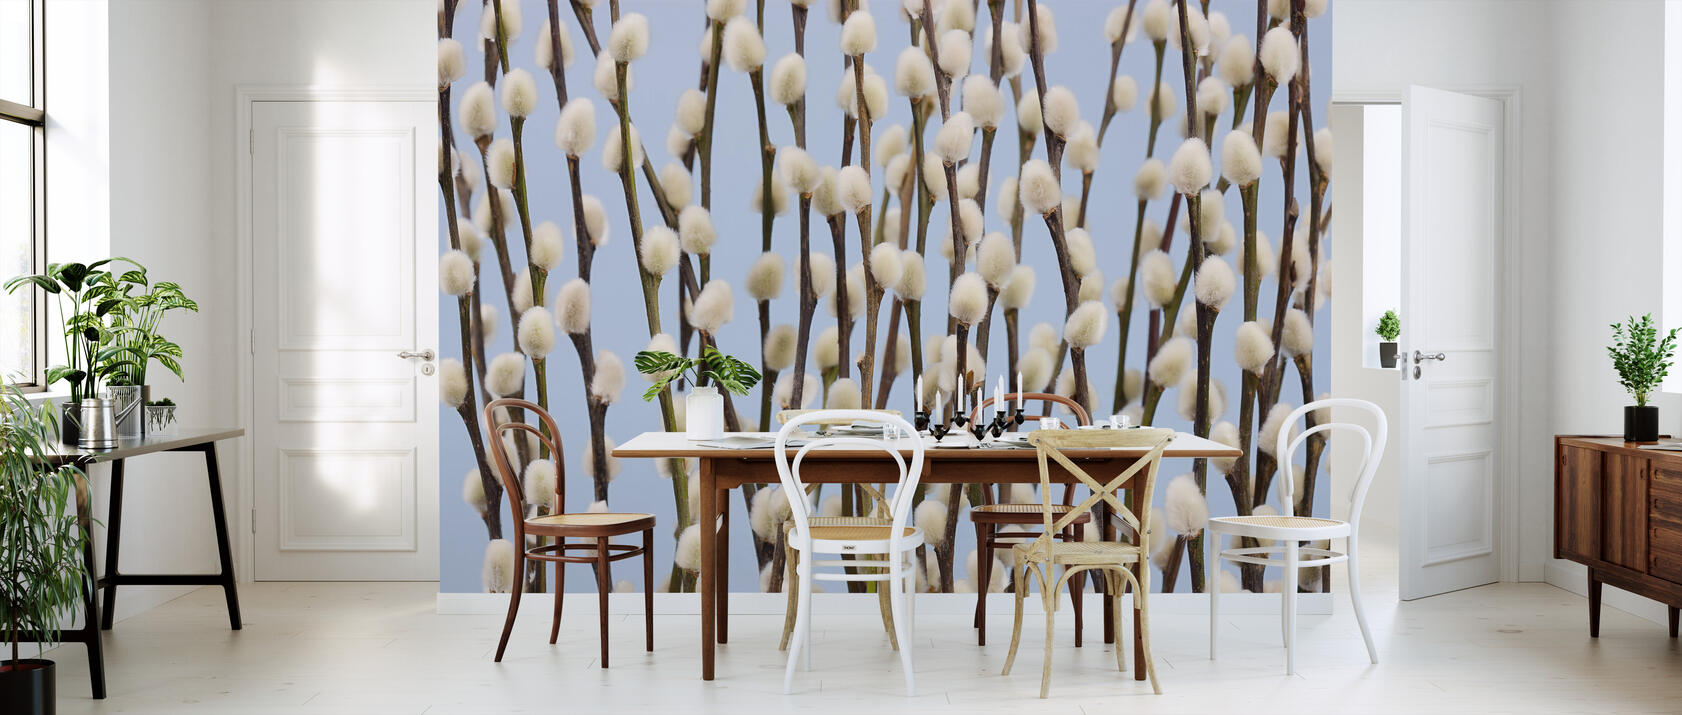 willow buds fototapete nach ma photowall. Black Bedroom Furniture Sets. Home Design Ideas